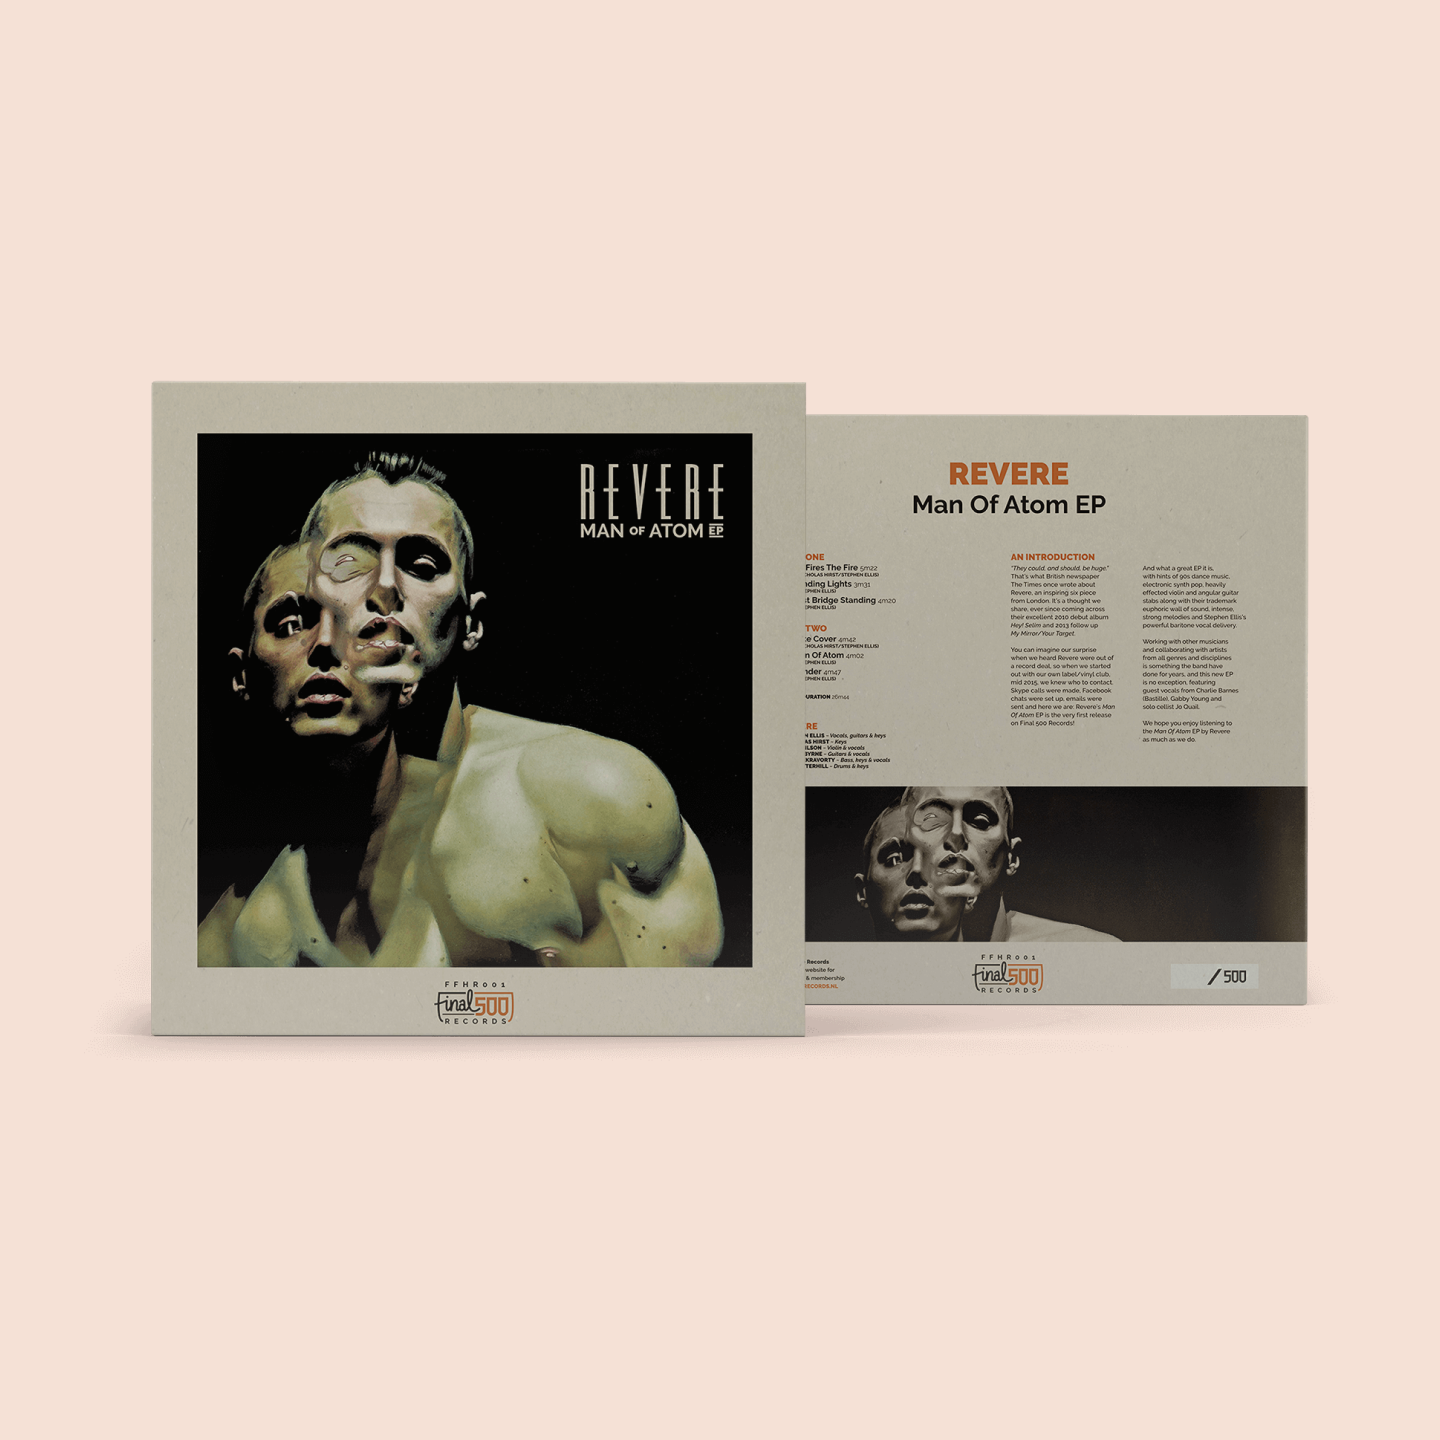 https://final500records.nl/wp-content/uploads/2020/11/FFHR001-Front-and-Back.png